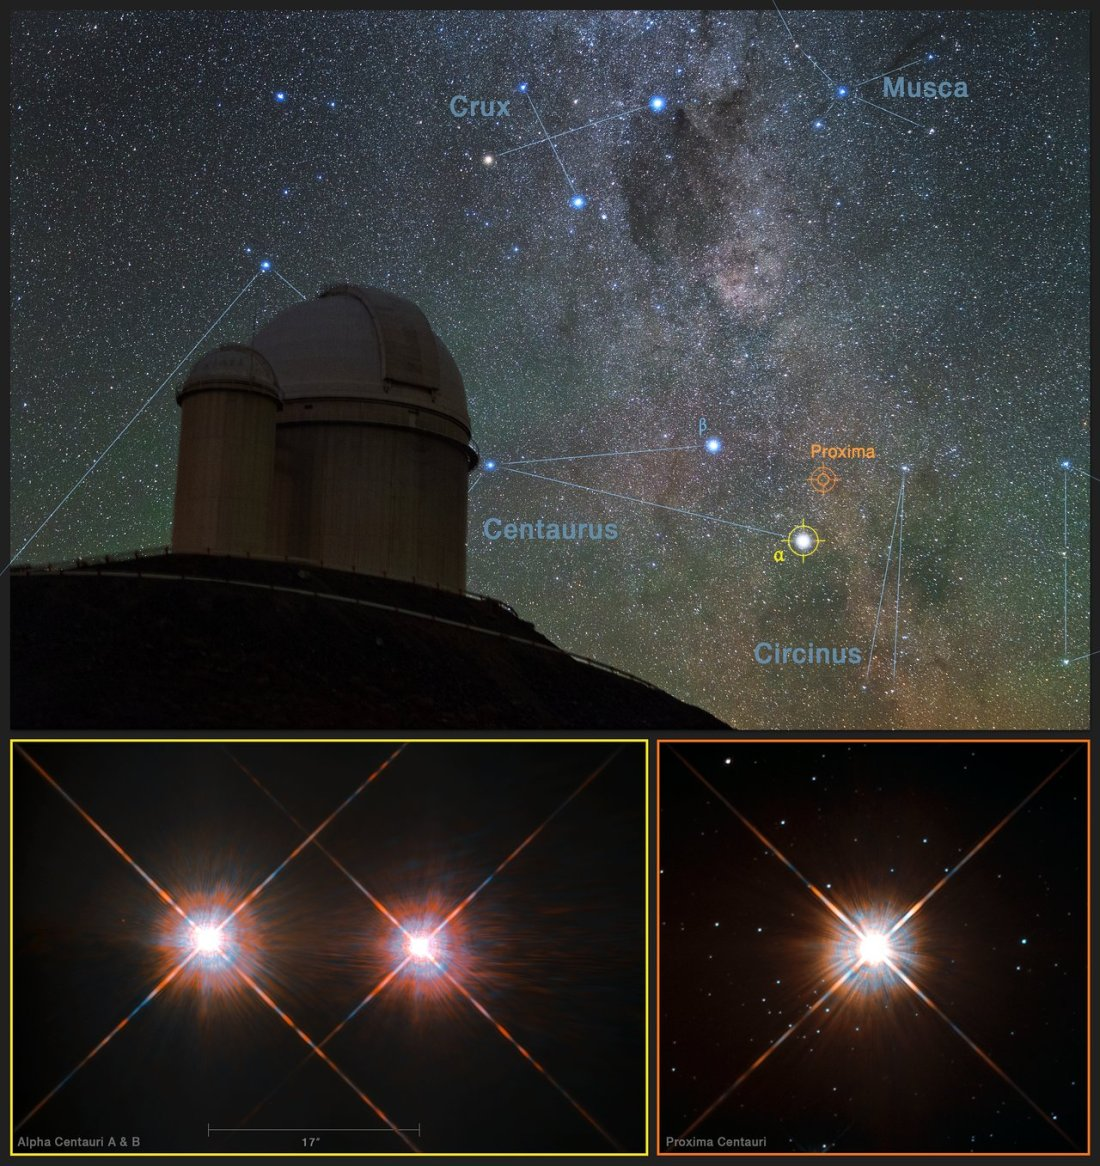 a view of the southern skies over the ESO 3.6-metre telescope at the La Silla Observatory in Chile with images of the stars Proxima Centauri (lower-right) and the double star Alpha Centauri AB (lower-left) from the NASA/ESA Hubble Space Telescope